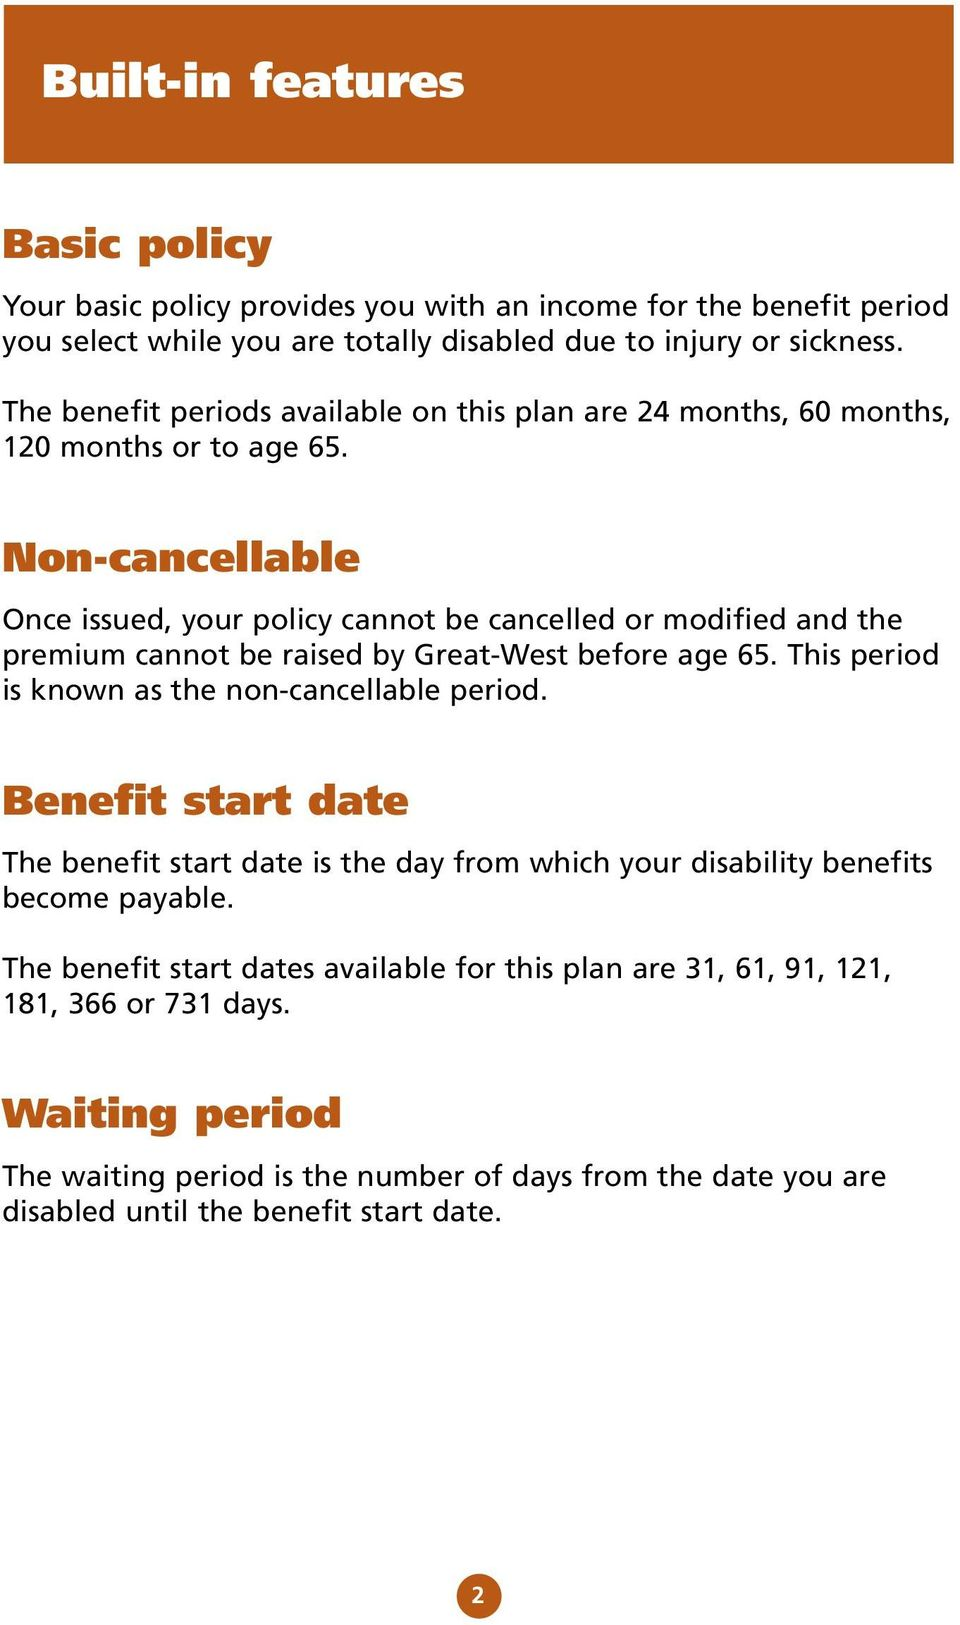 Non-cancellable Once issued, your policy cannot be cancelled or modified and the premium cannot be raised by Great-West before age 65. This period is known as the non-cancellable period.